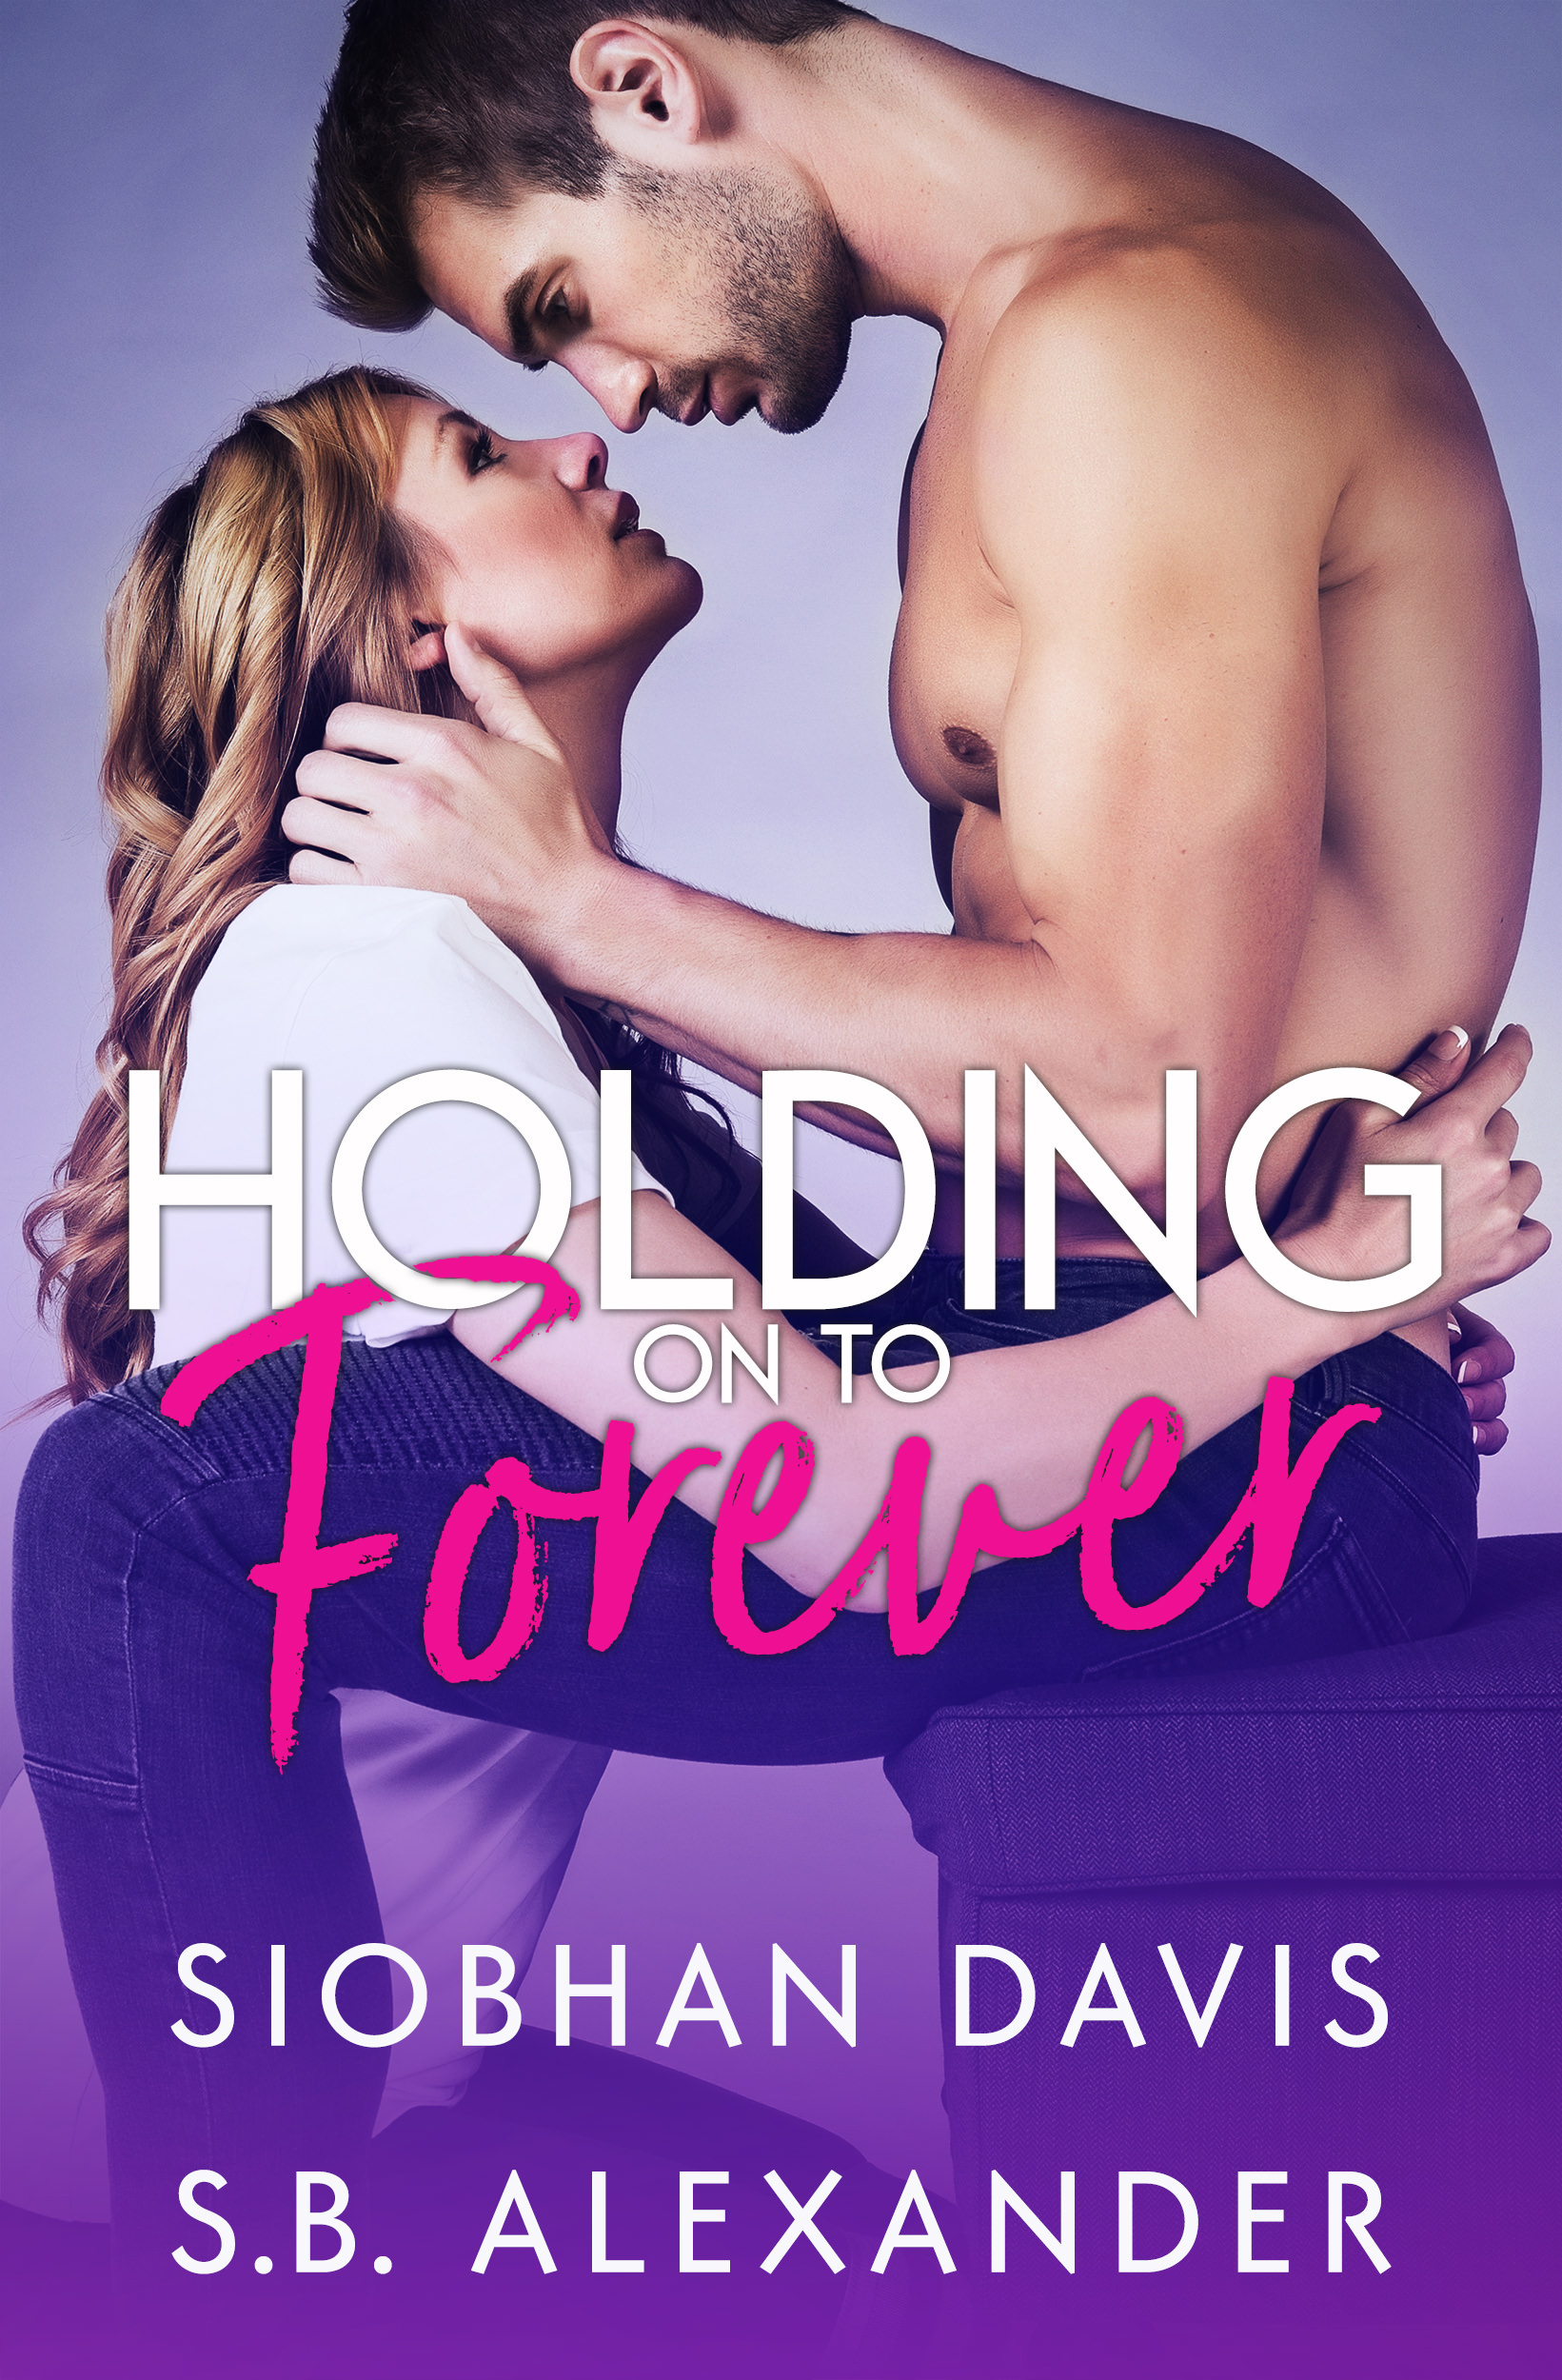 Holding on to Forever by Siobhan Davis and S.B. Alexander